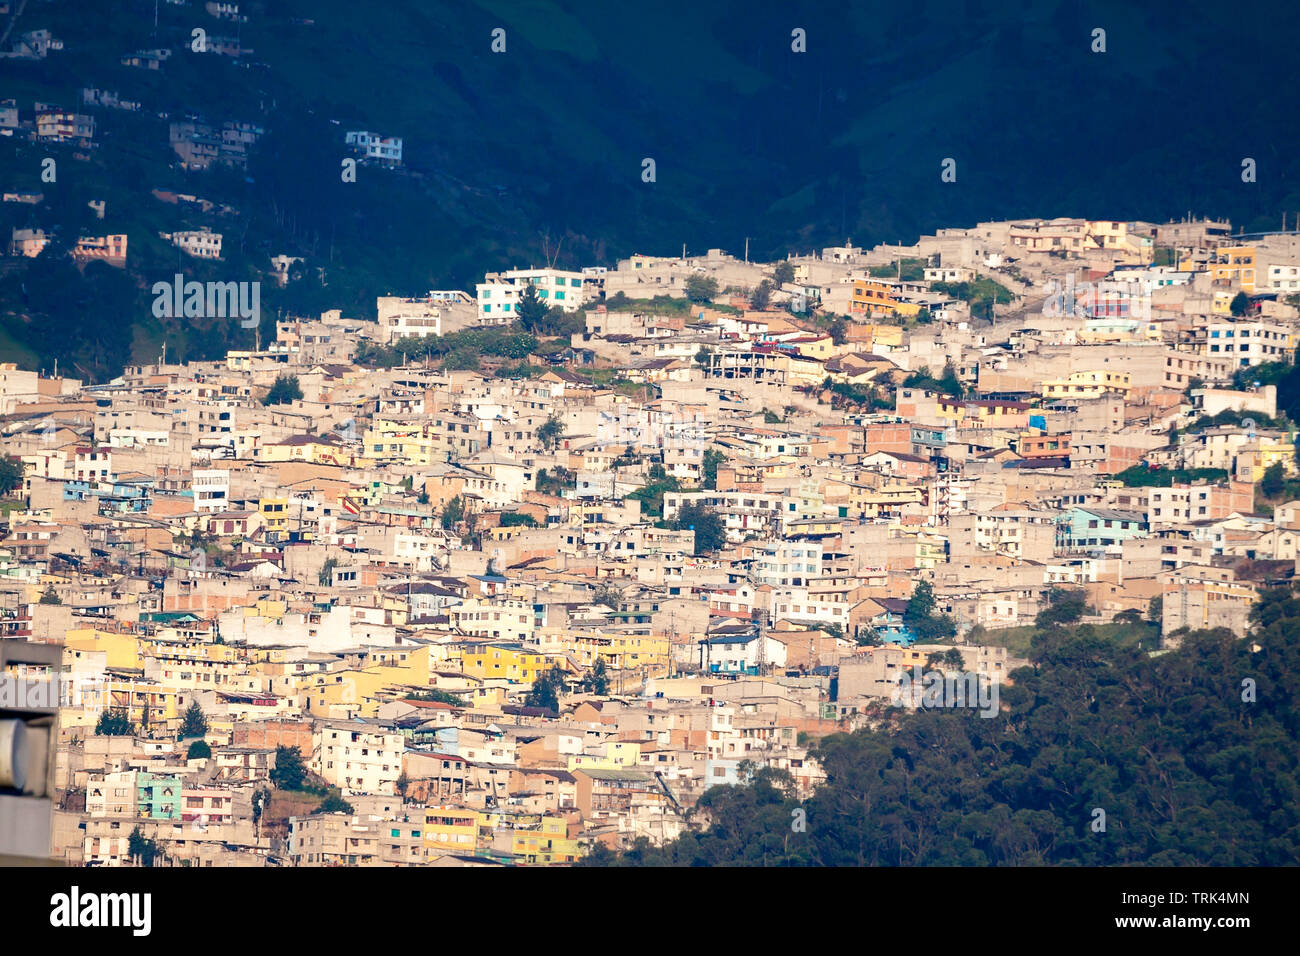 A hillside neighborhood in Quito, the capital city of Equador. - Stock Image